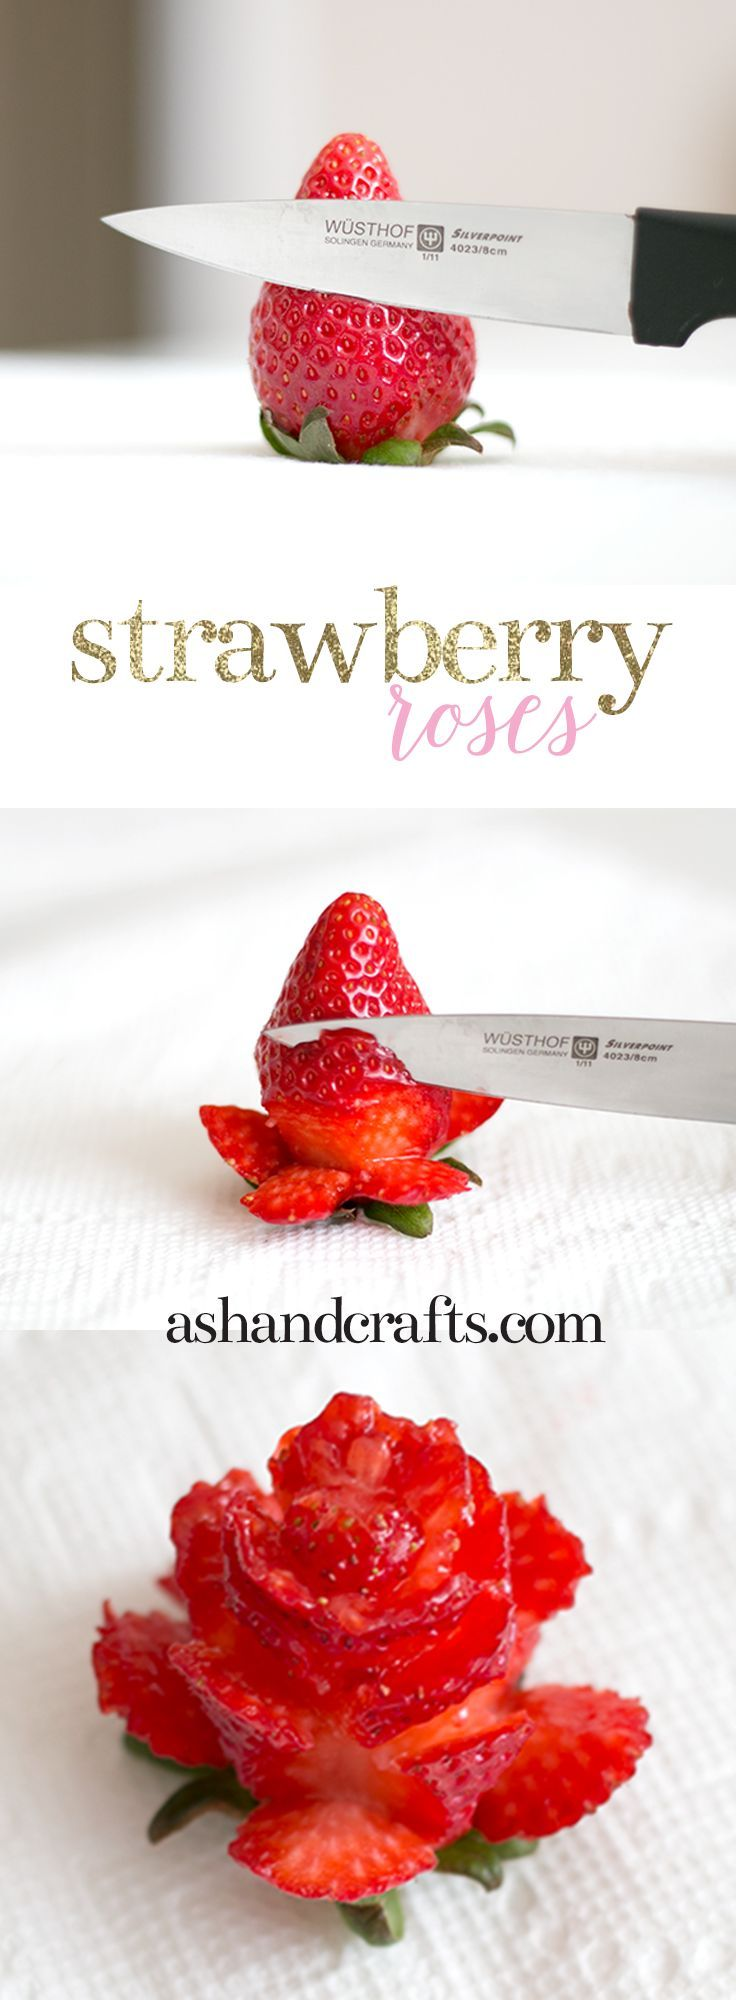 Learn how to cut strawberries into roses. See this tutorial and more at ashandcrafts.com